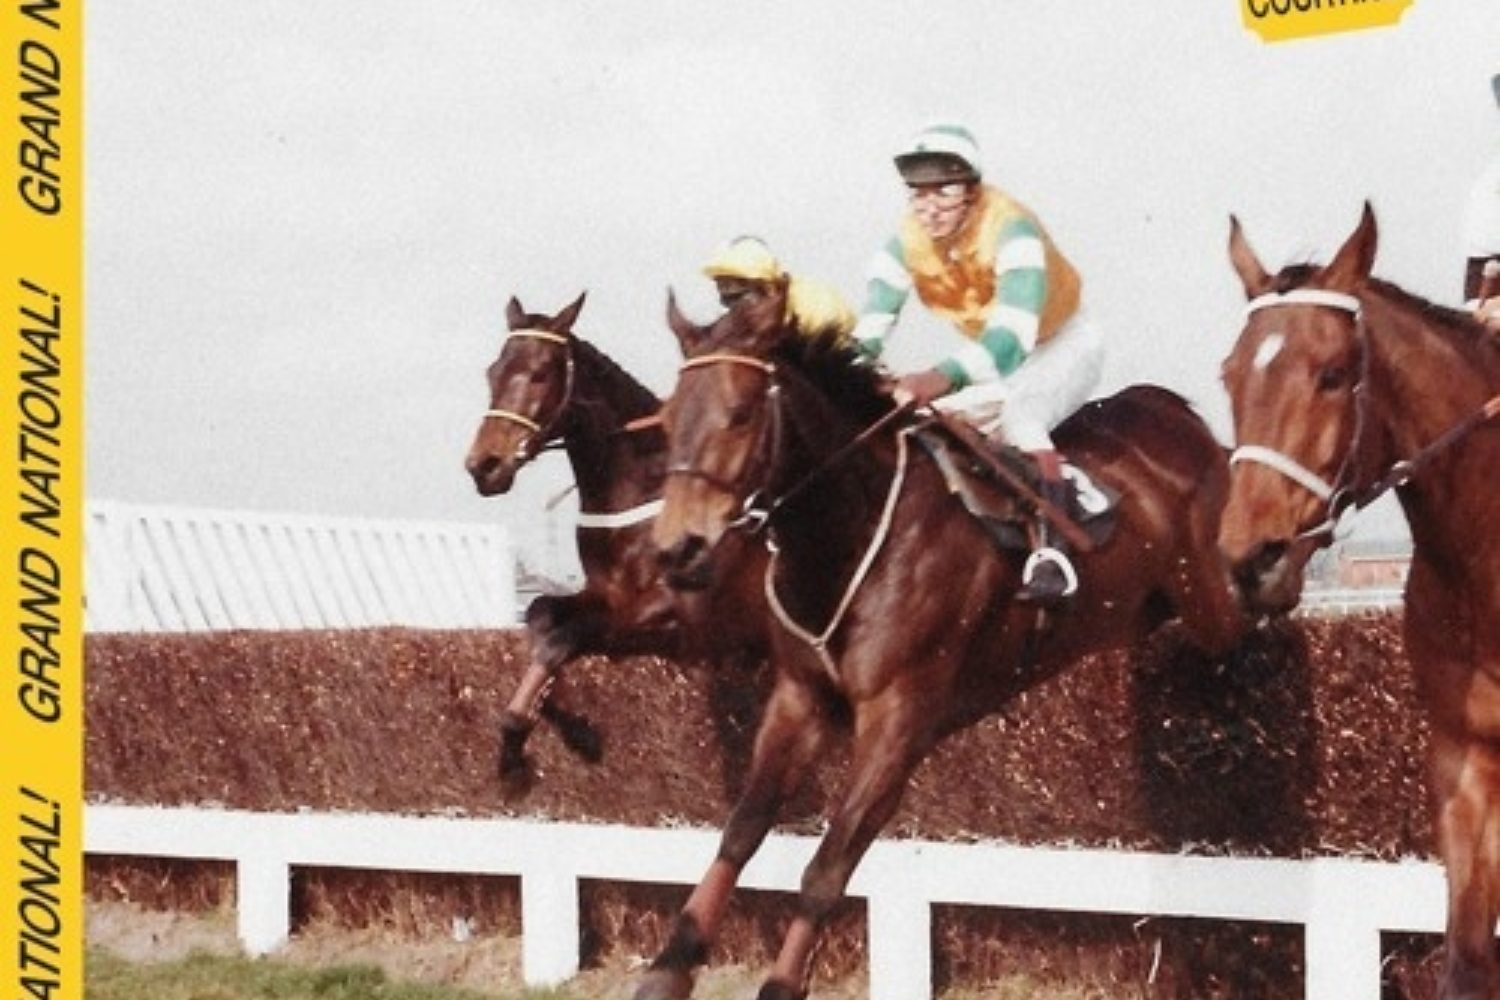 Courting - Grand National